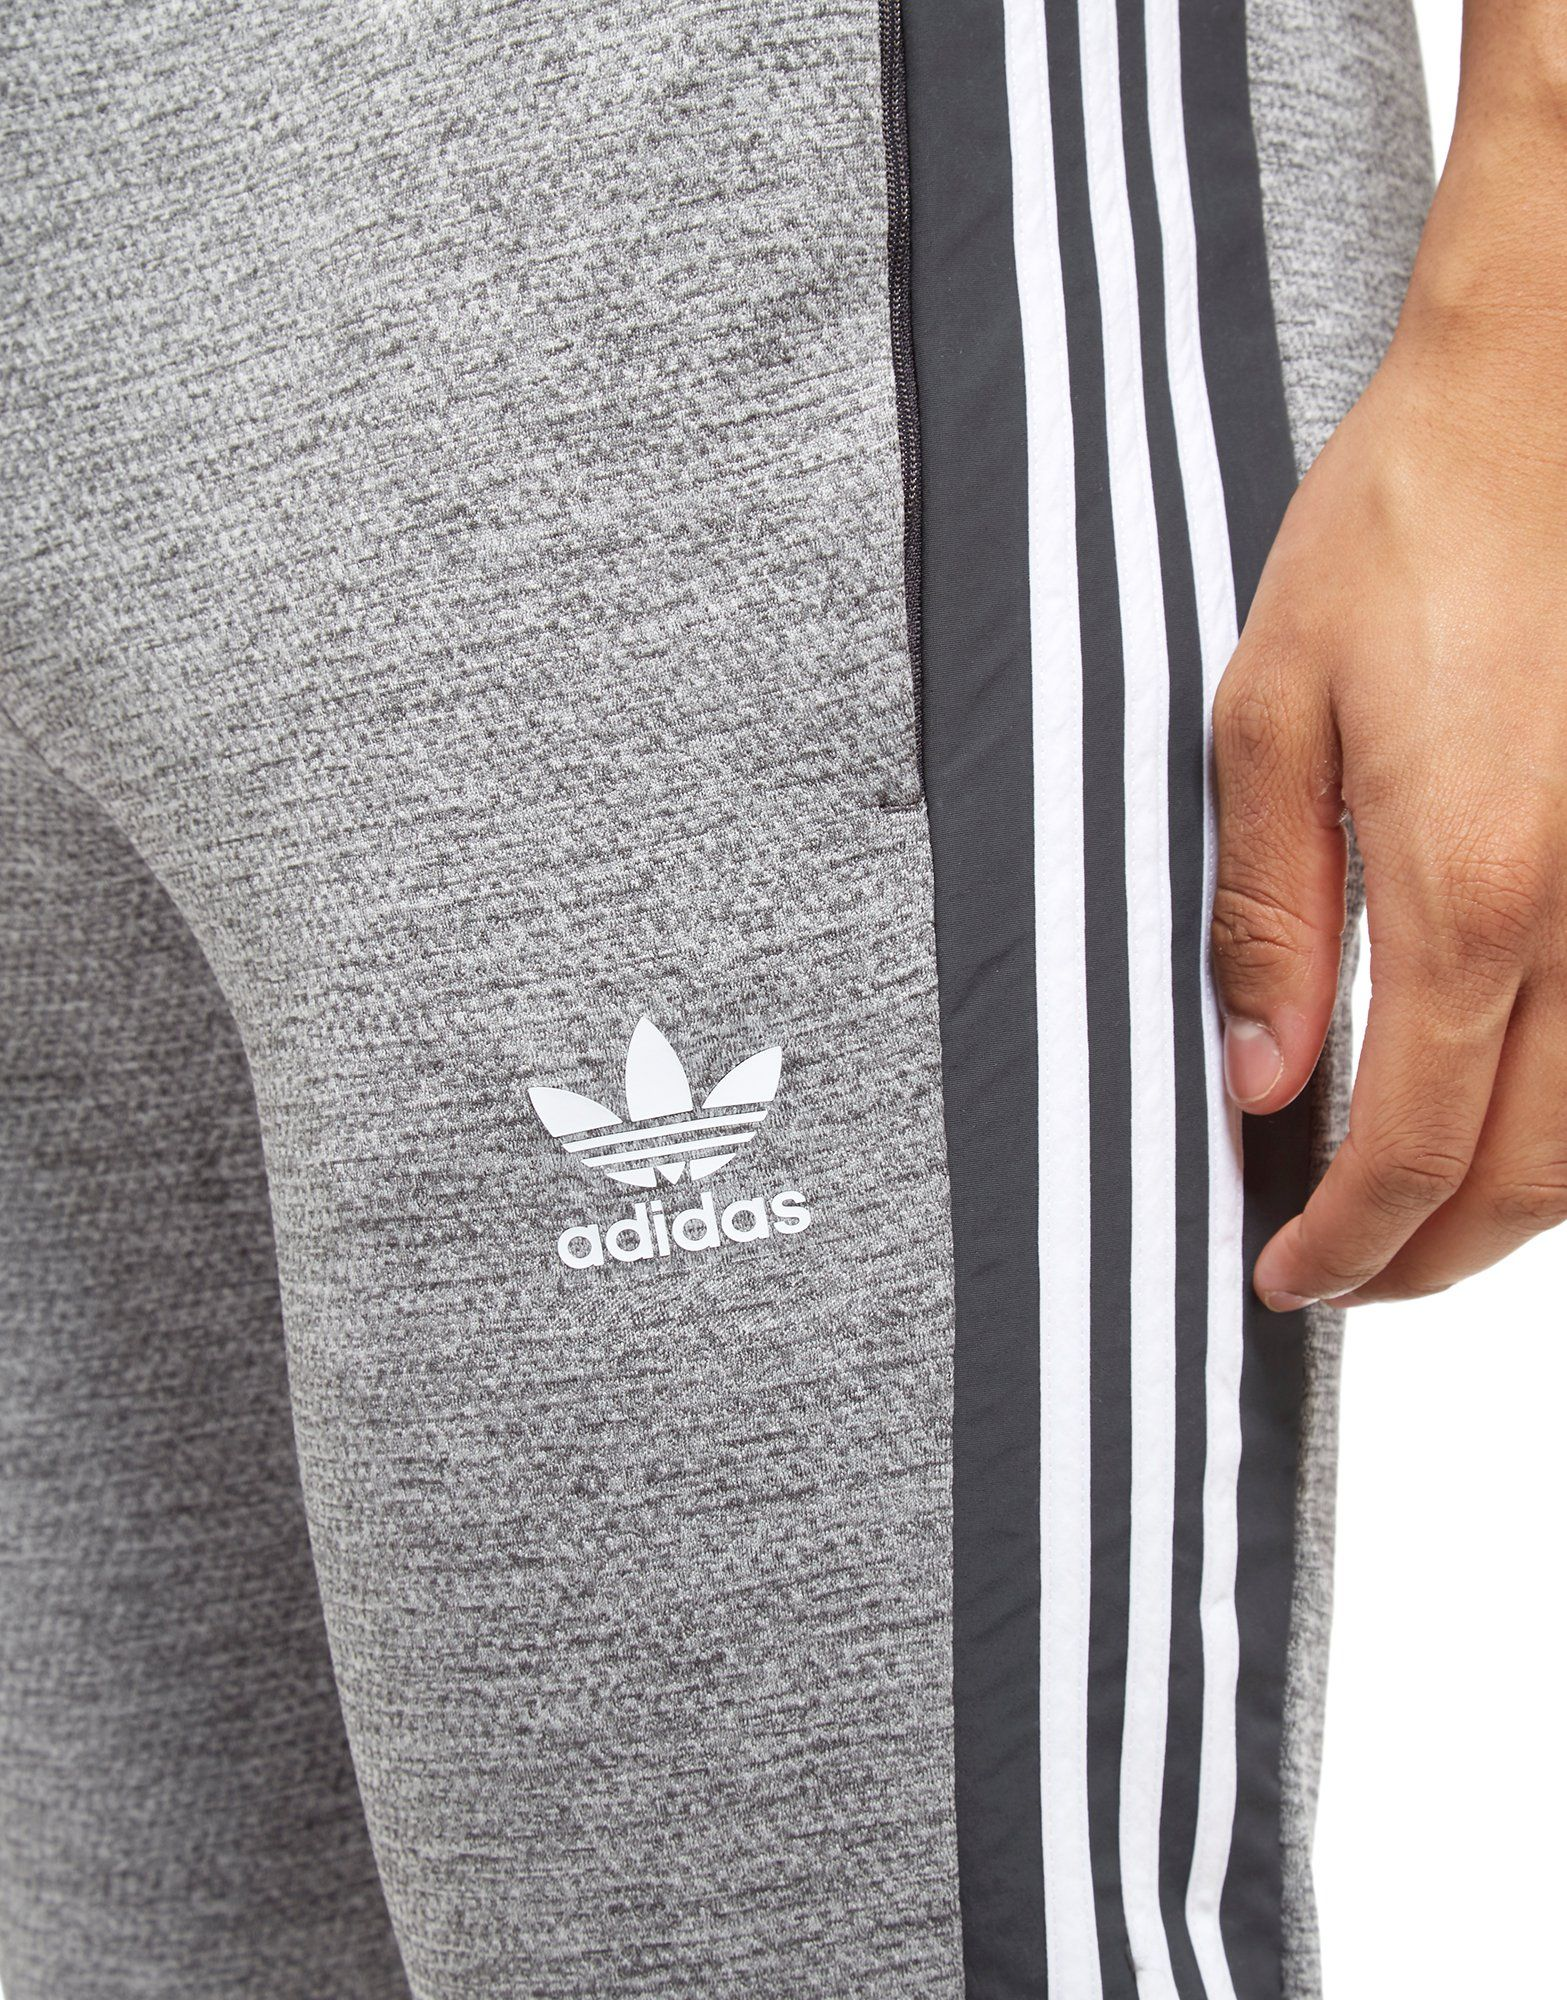 Adidas Originals Nova Woven Pants JD Sports